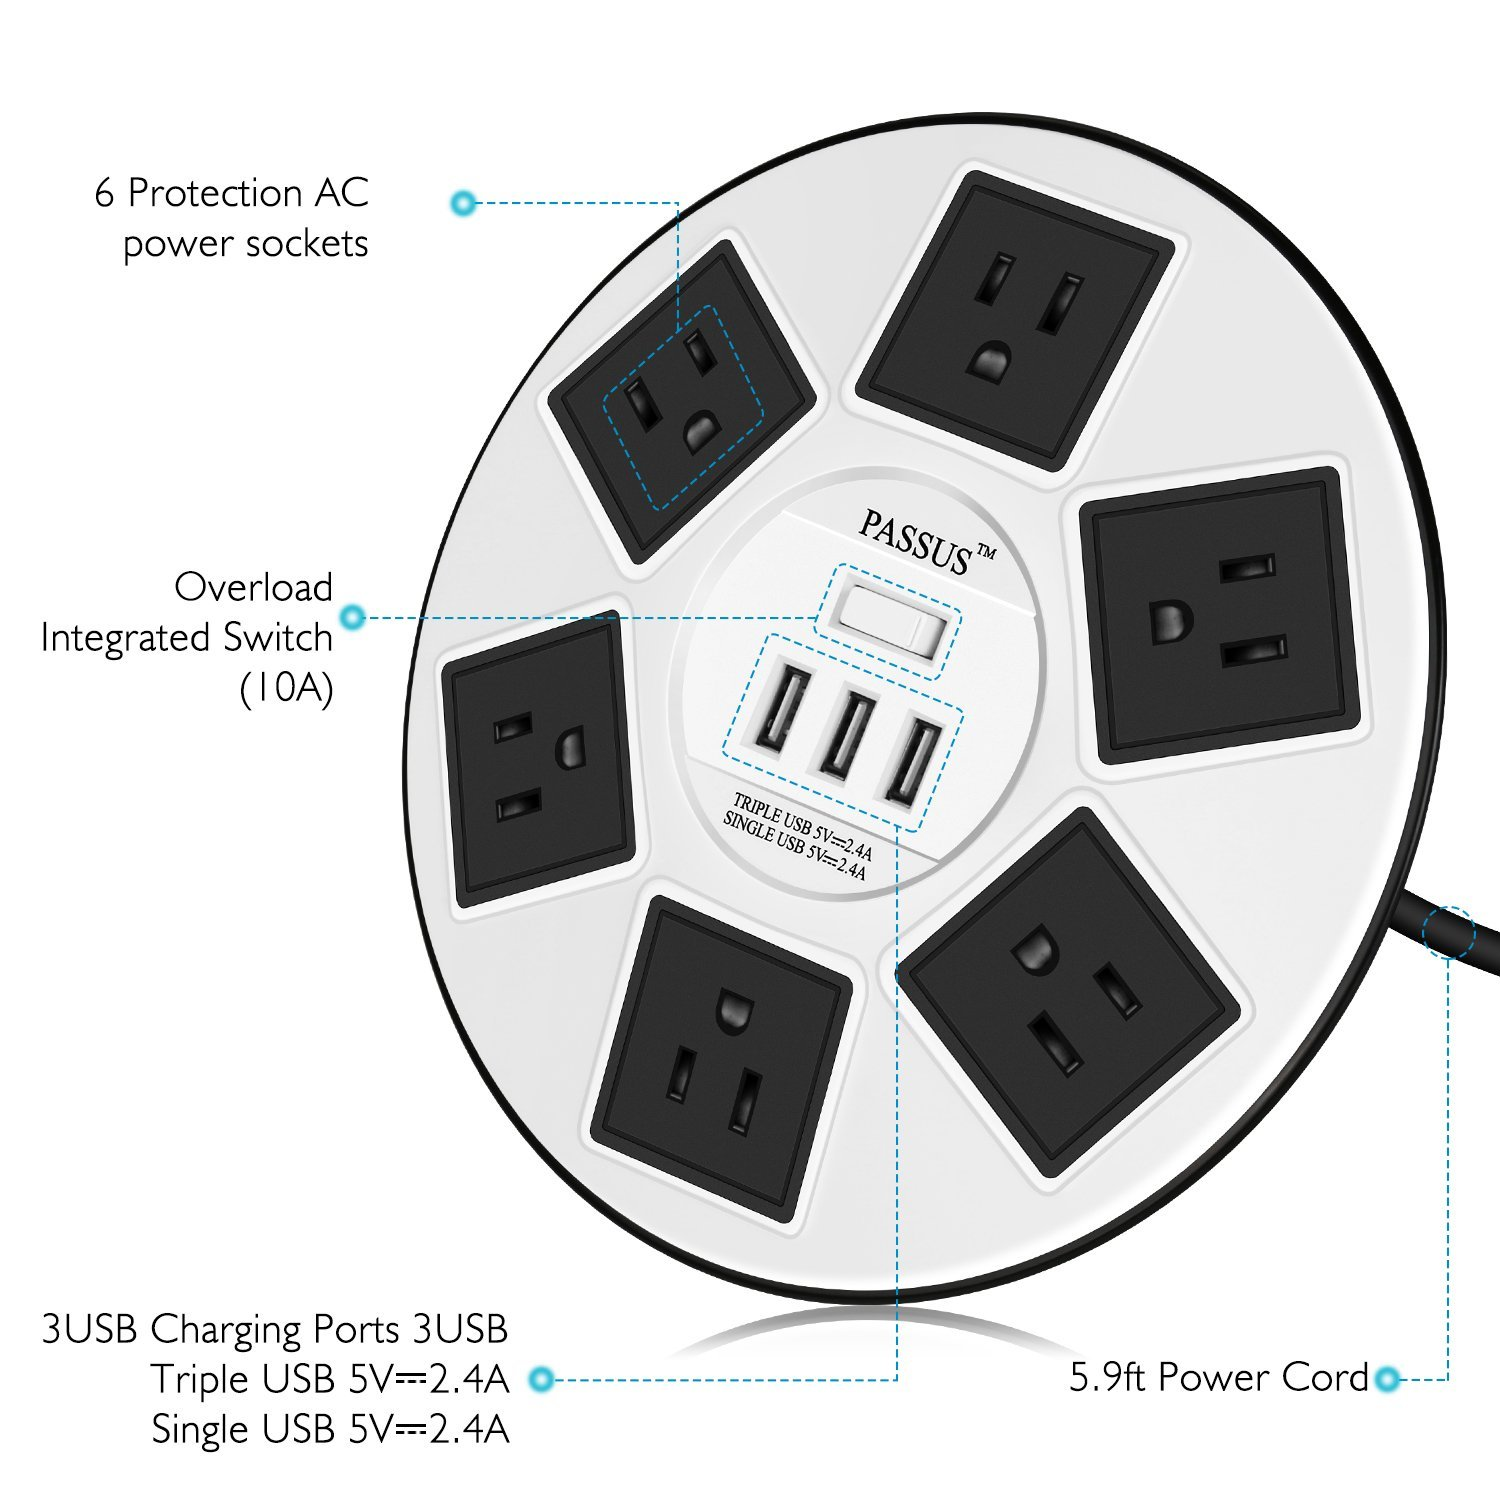 Idea for Home and Office White PASSUS Long 6 ft Cord Wire Round Surge Protector Power Strip 6 Outlet and 3 USB Charging Ports 2500W UFO Designed With Overload Protection /& Safety Door